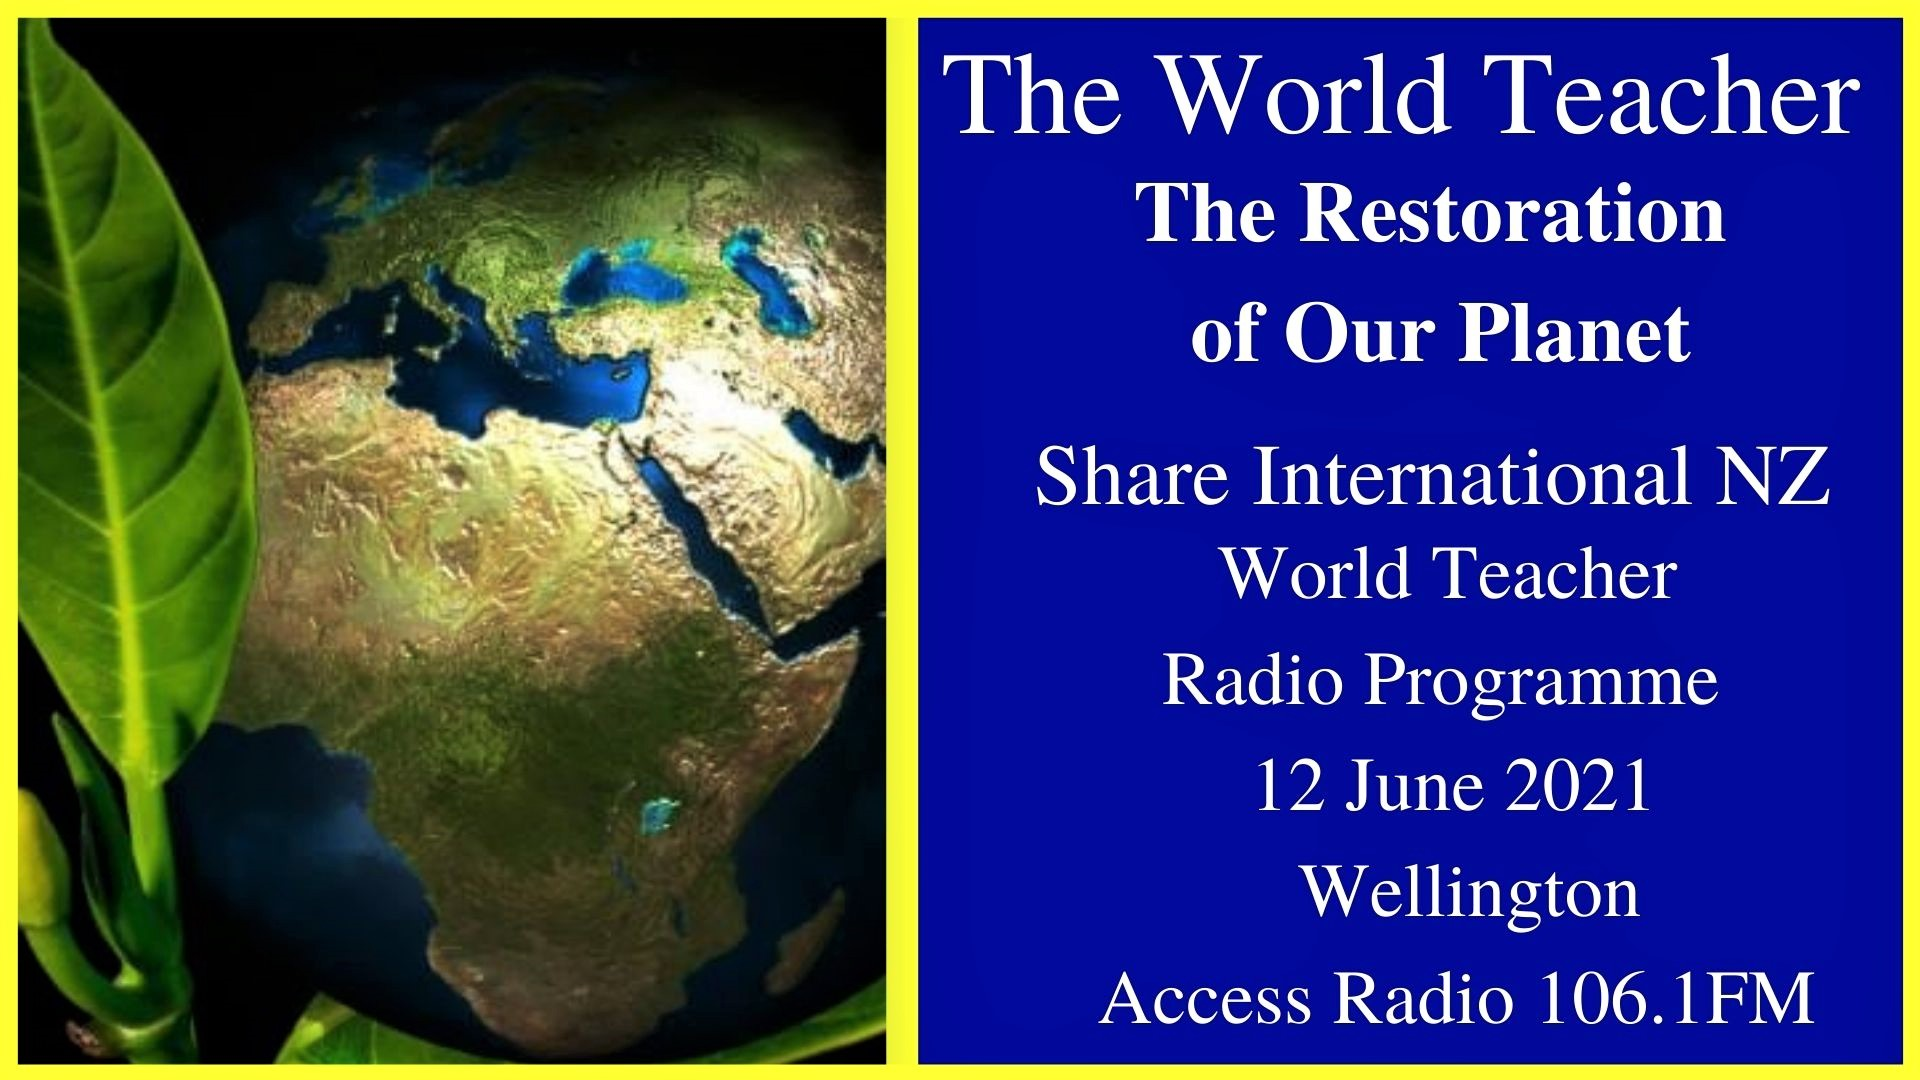 32) The Restoration of Our Planet